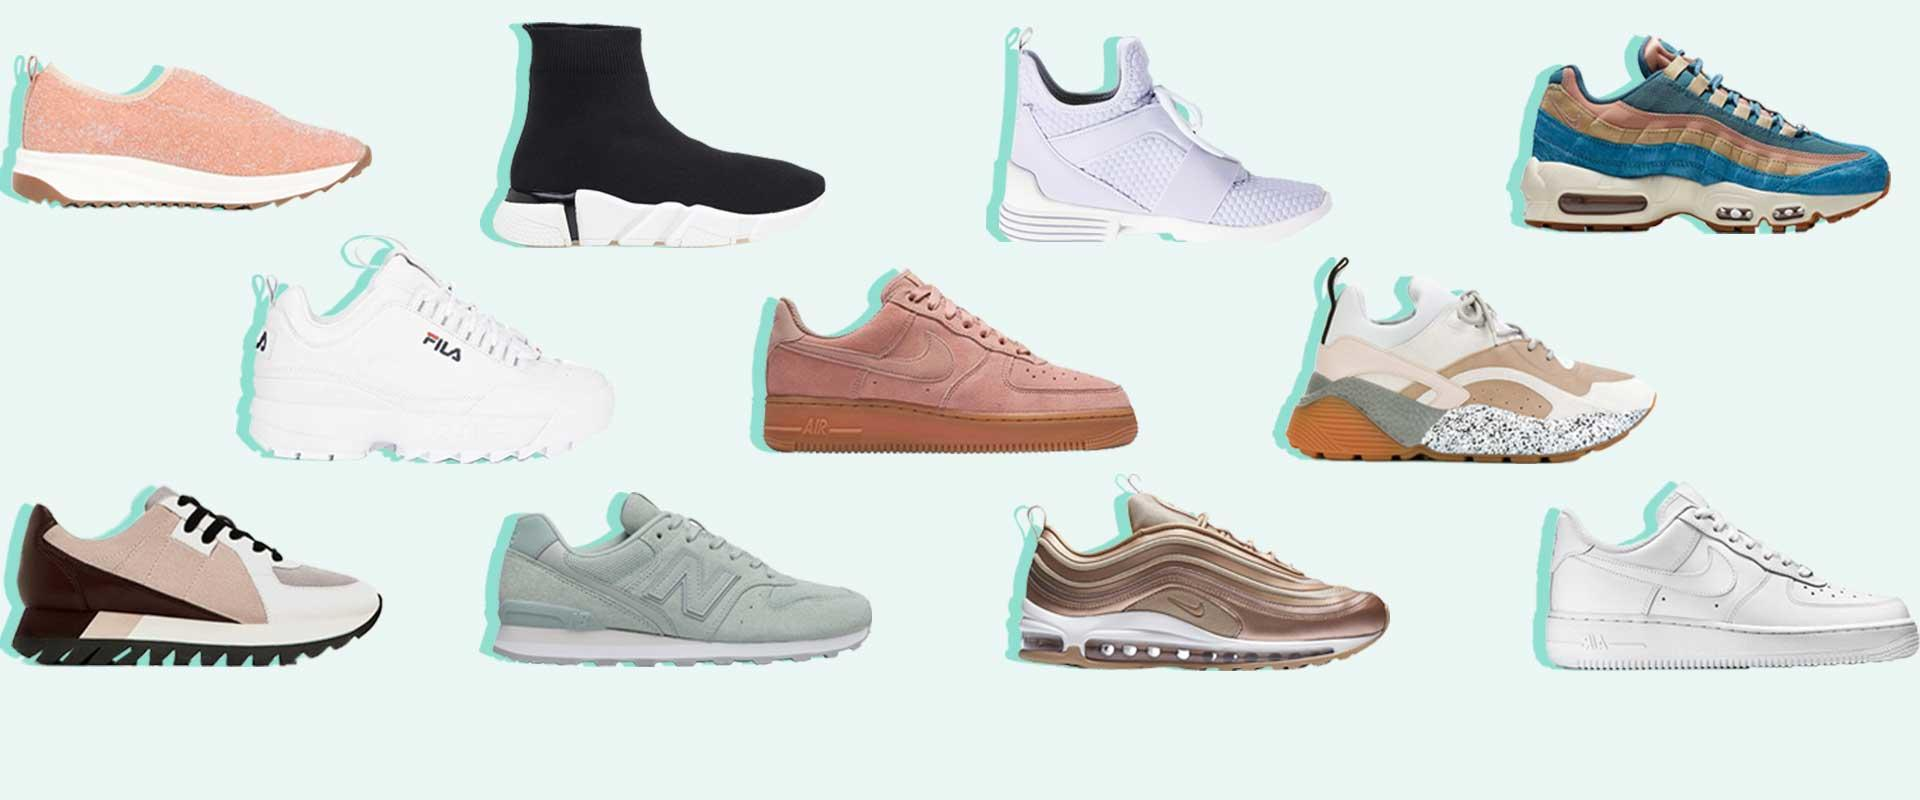 8 Sneaker Trends Every Fashion Girl Will Be Wearing In 2018